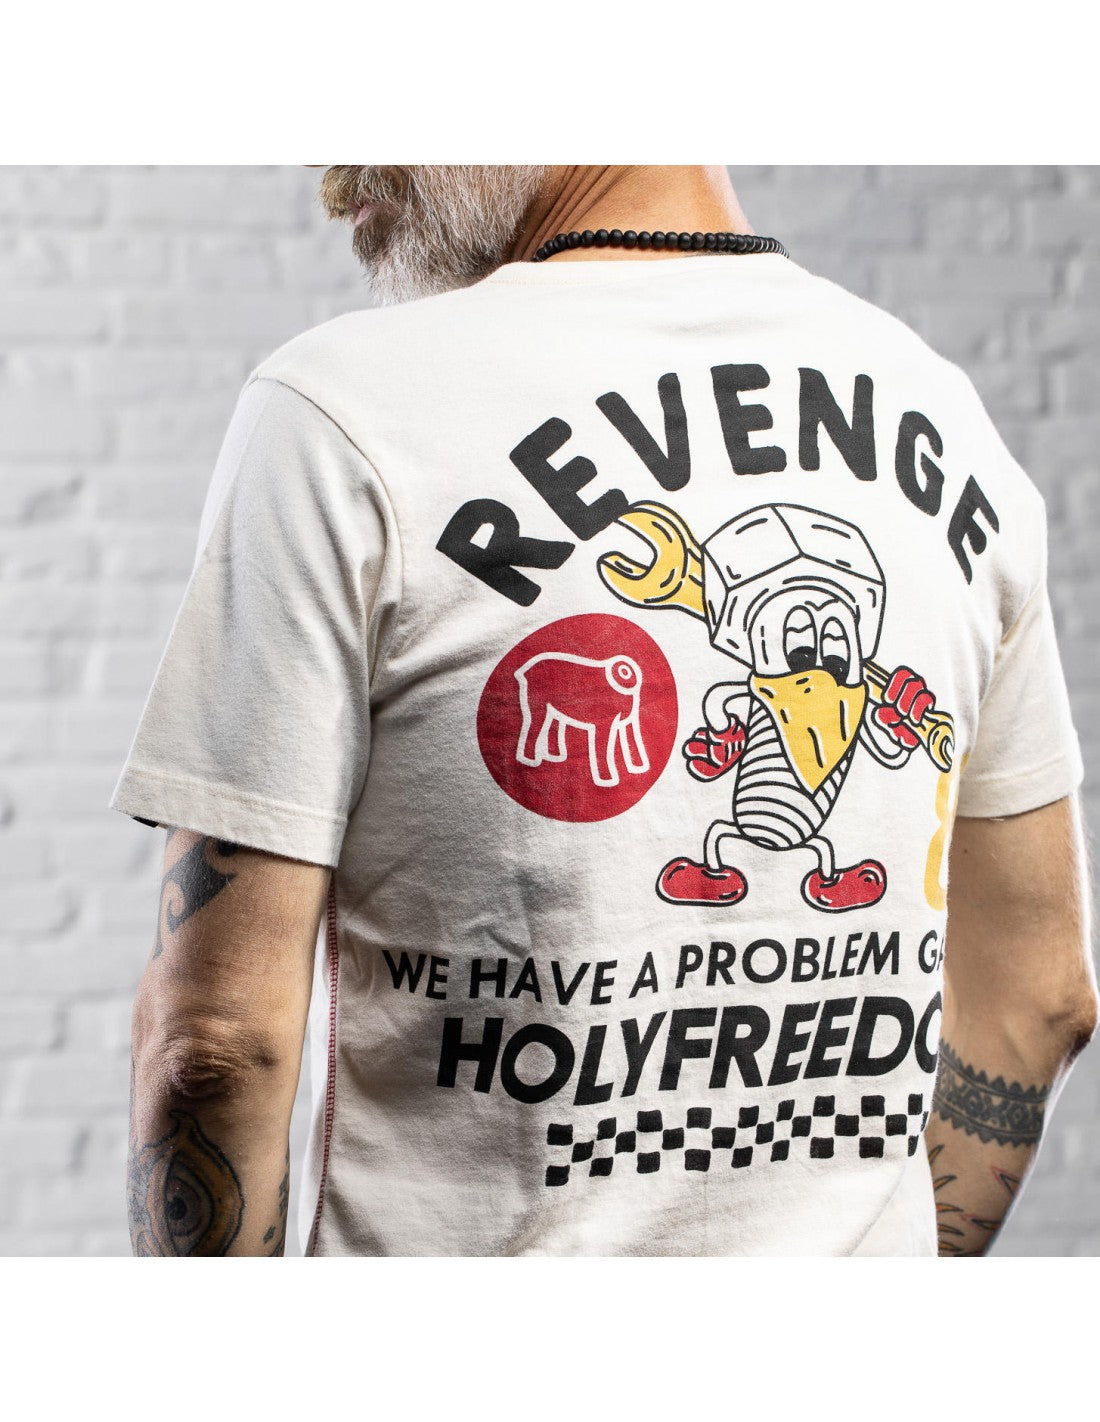 Holy Freedom Revenge Short Sleeve T'Shirt